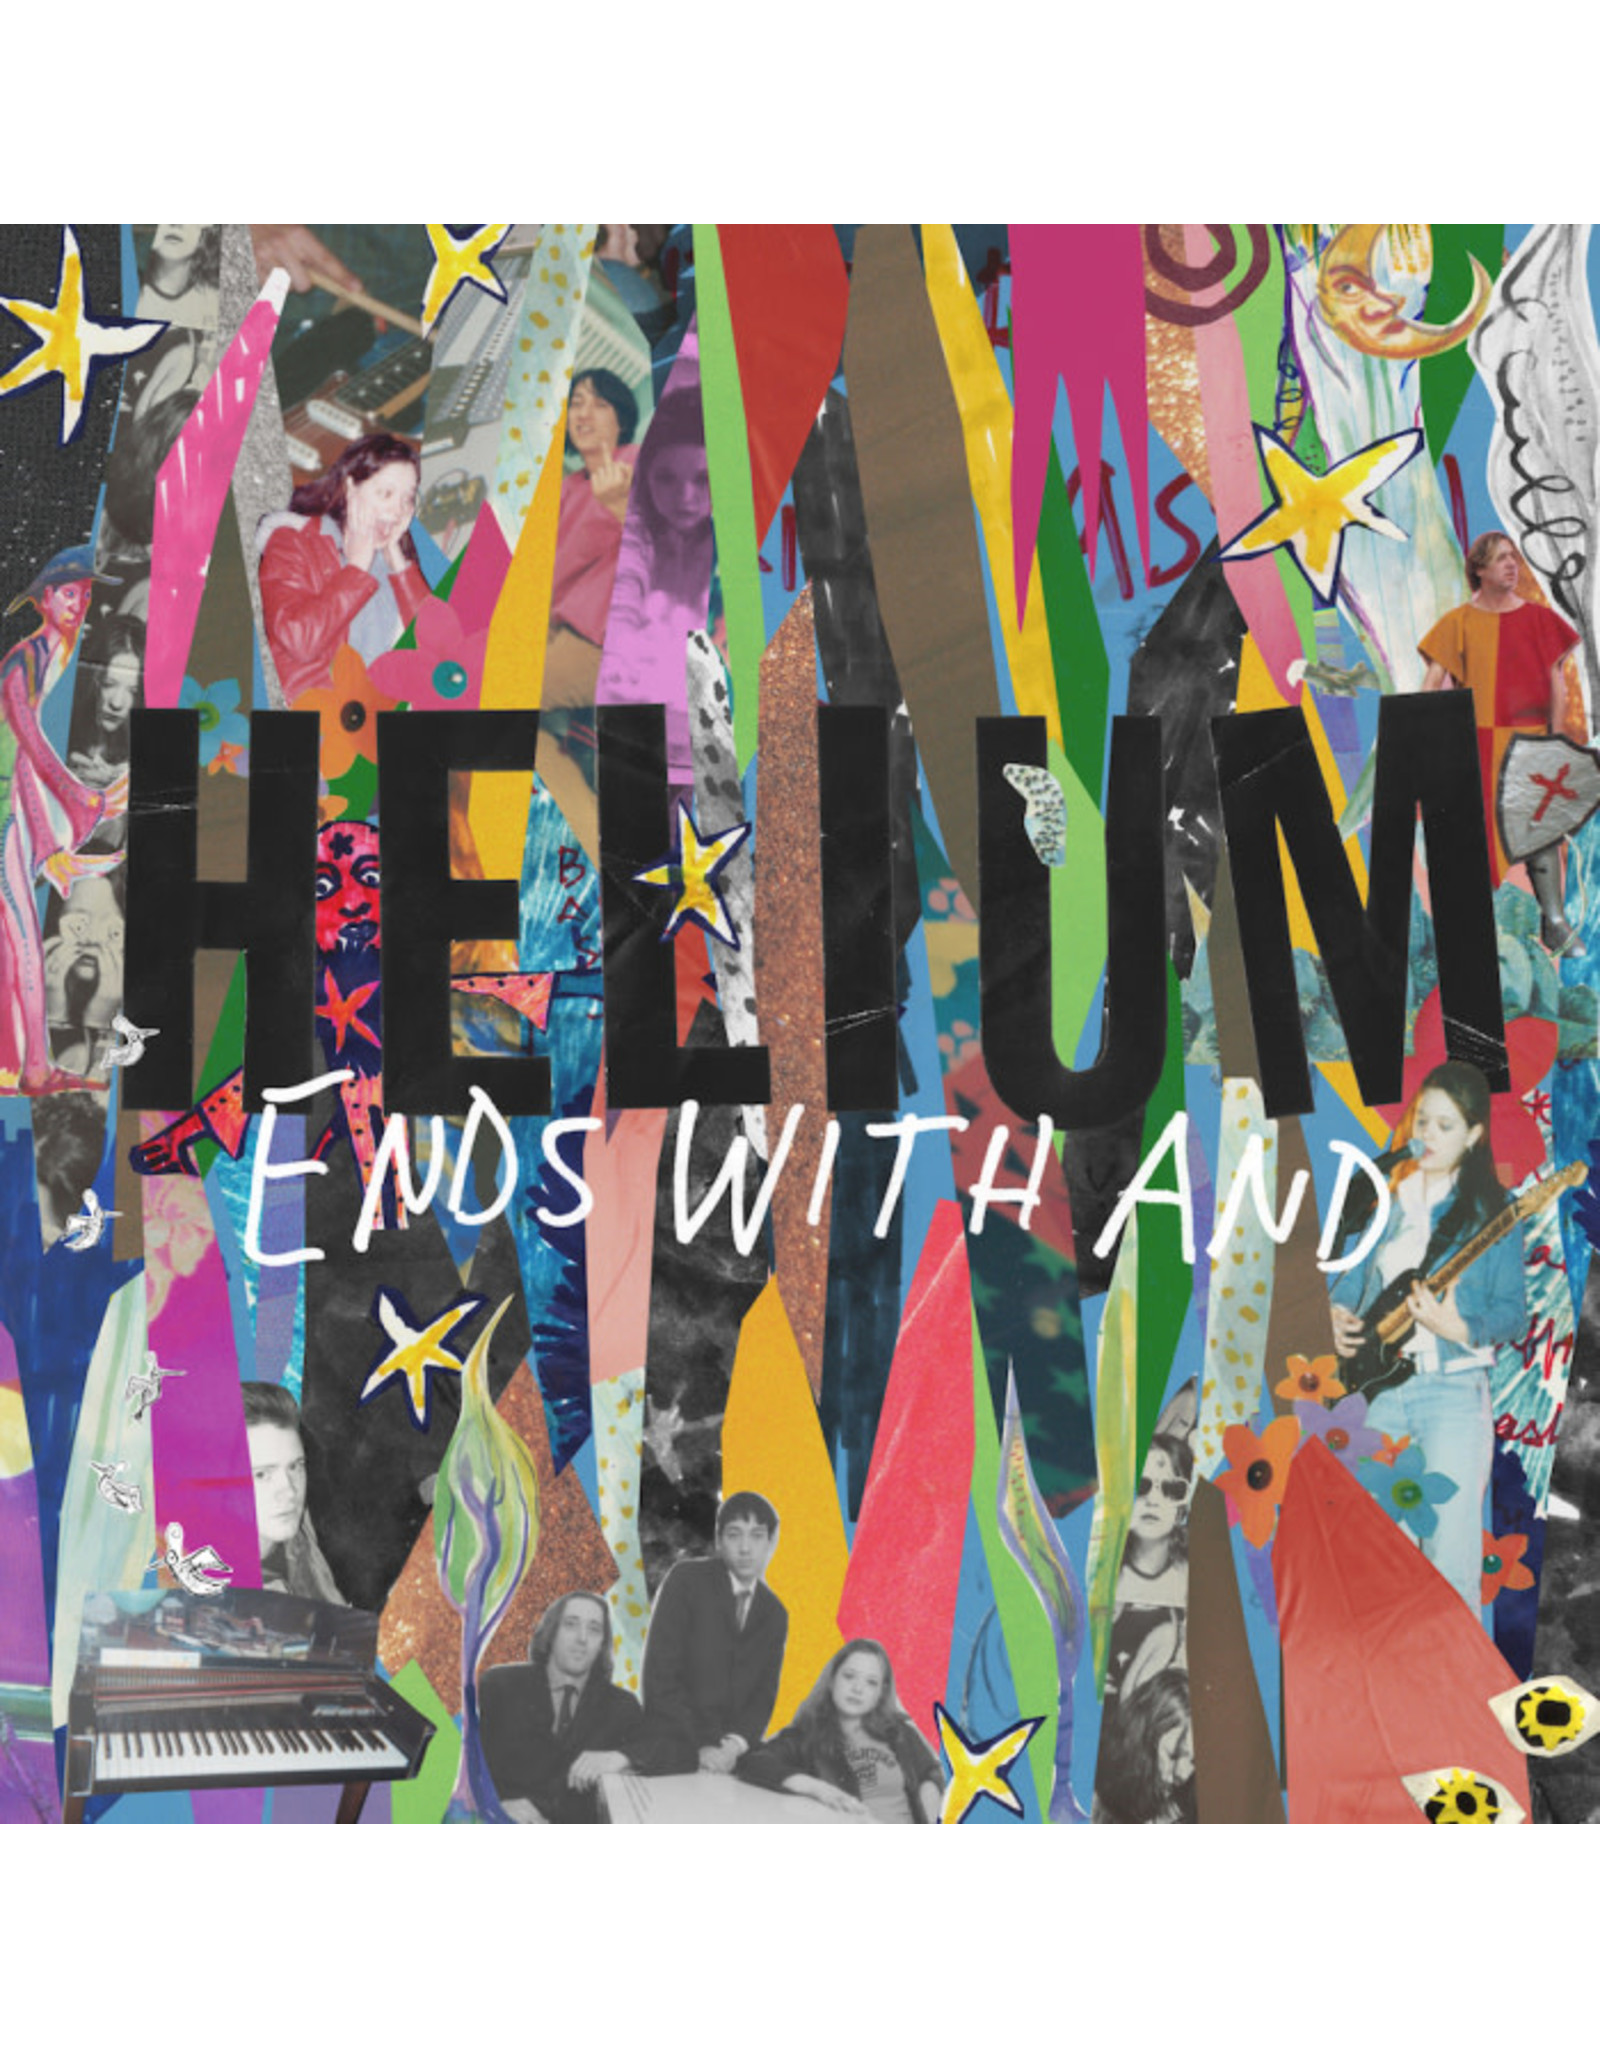 Helium - Ends With And (yellow & blue vinyl) 2LP